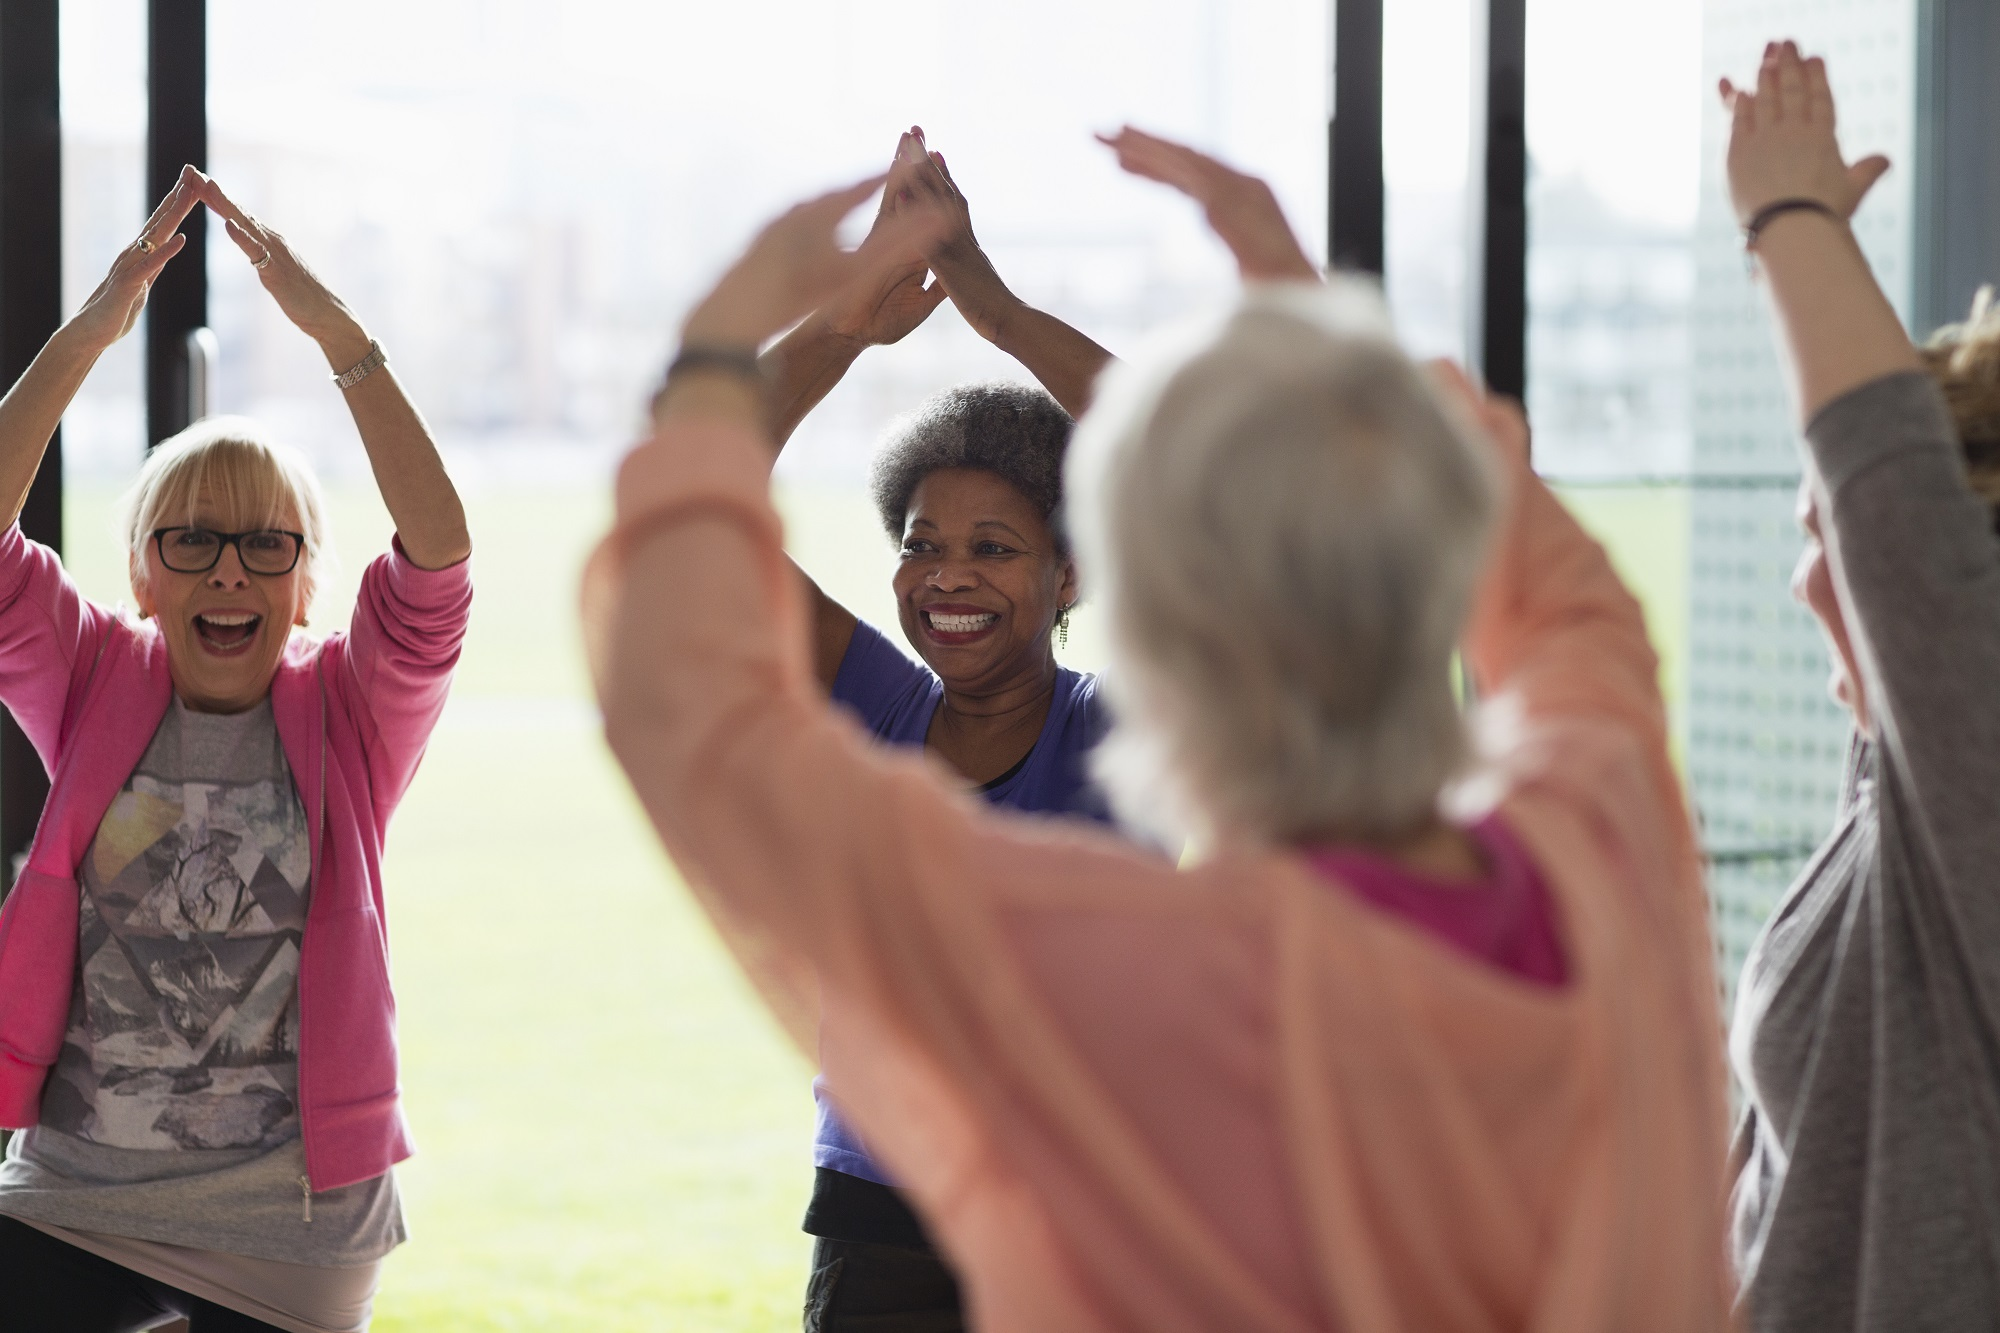 Exercise May Be an Effective Alternative Treatment Option